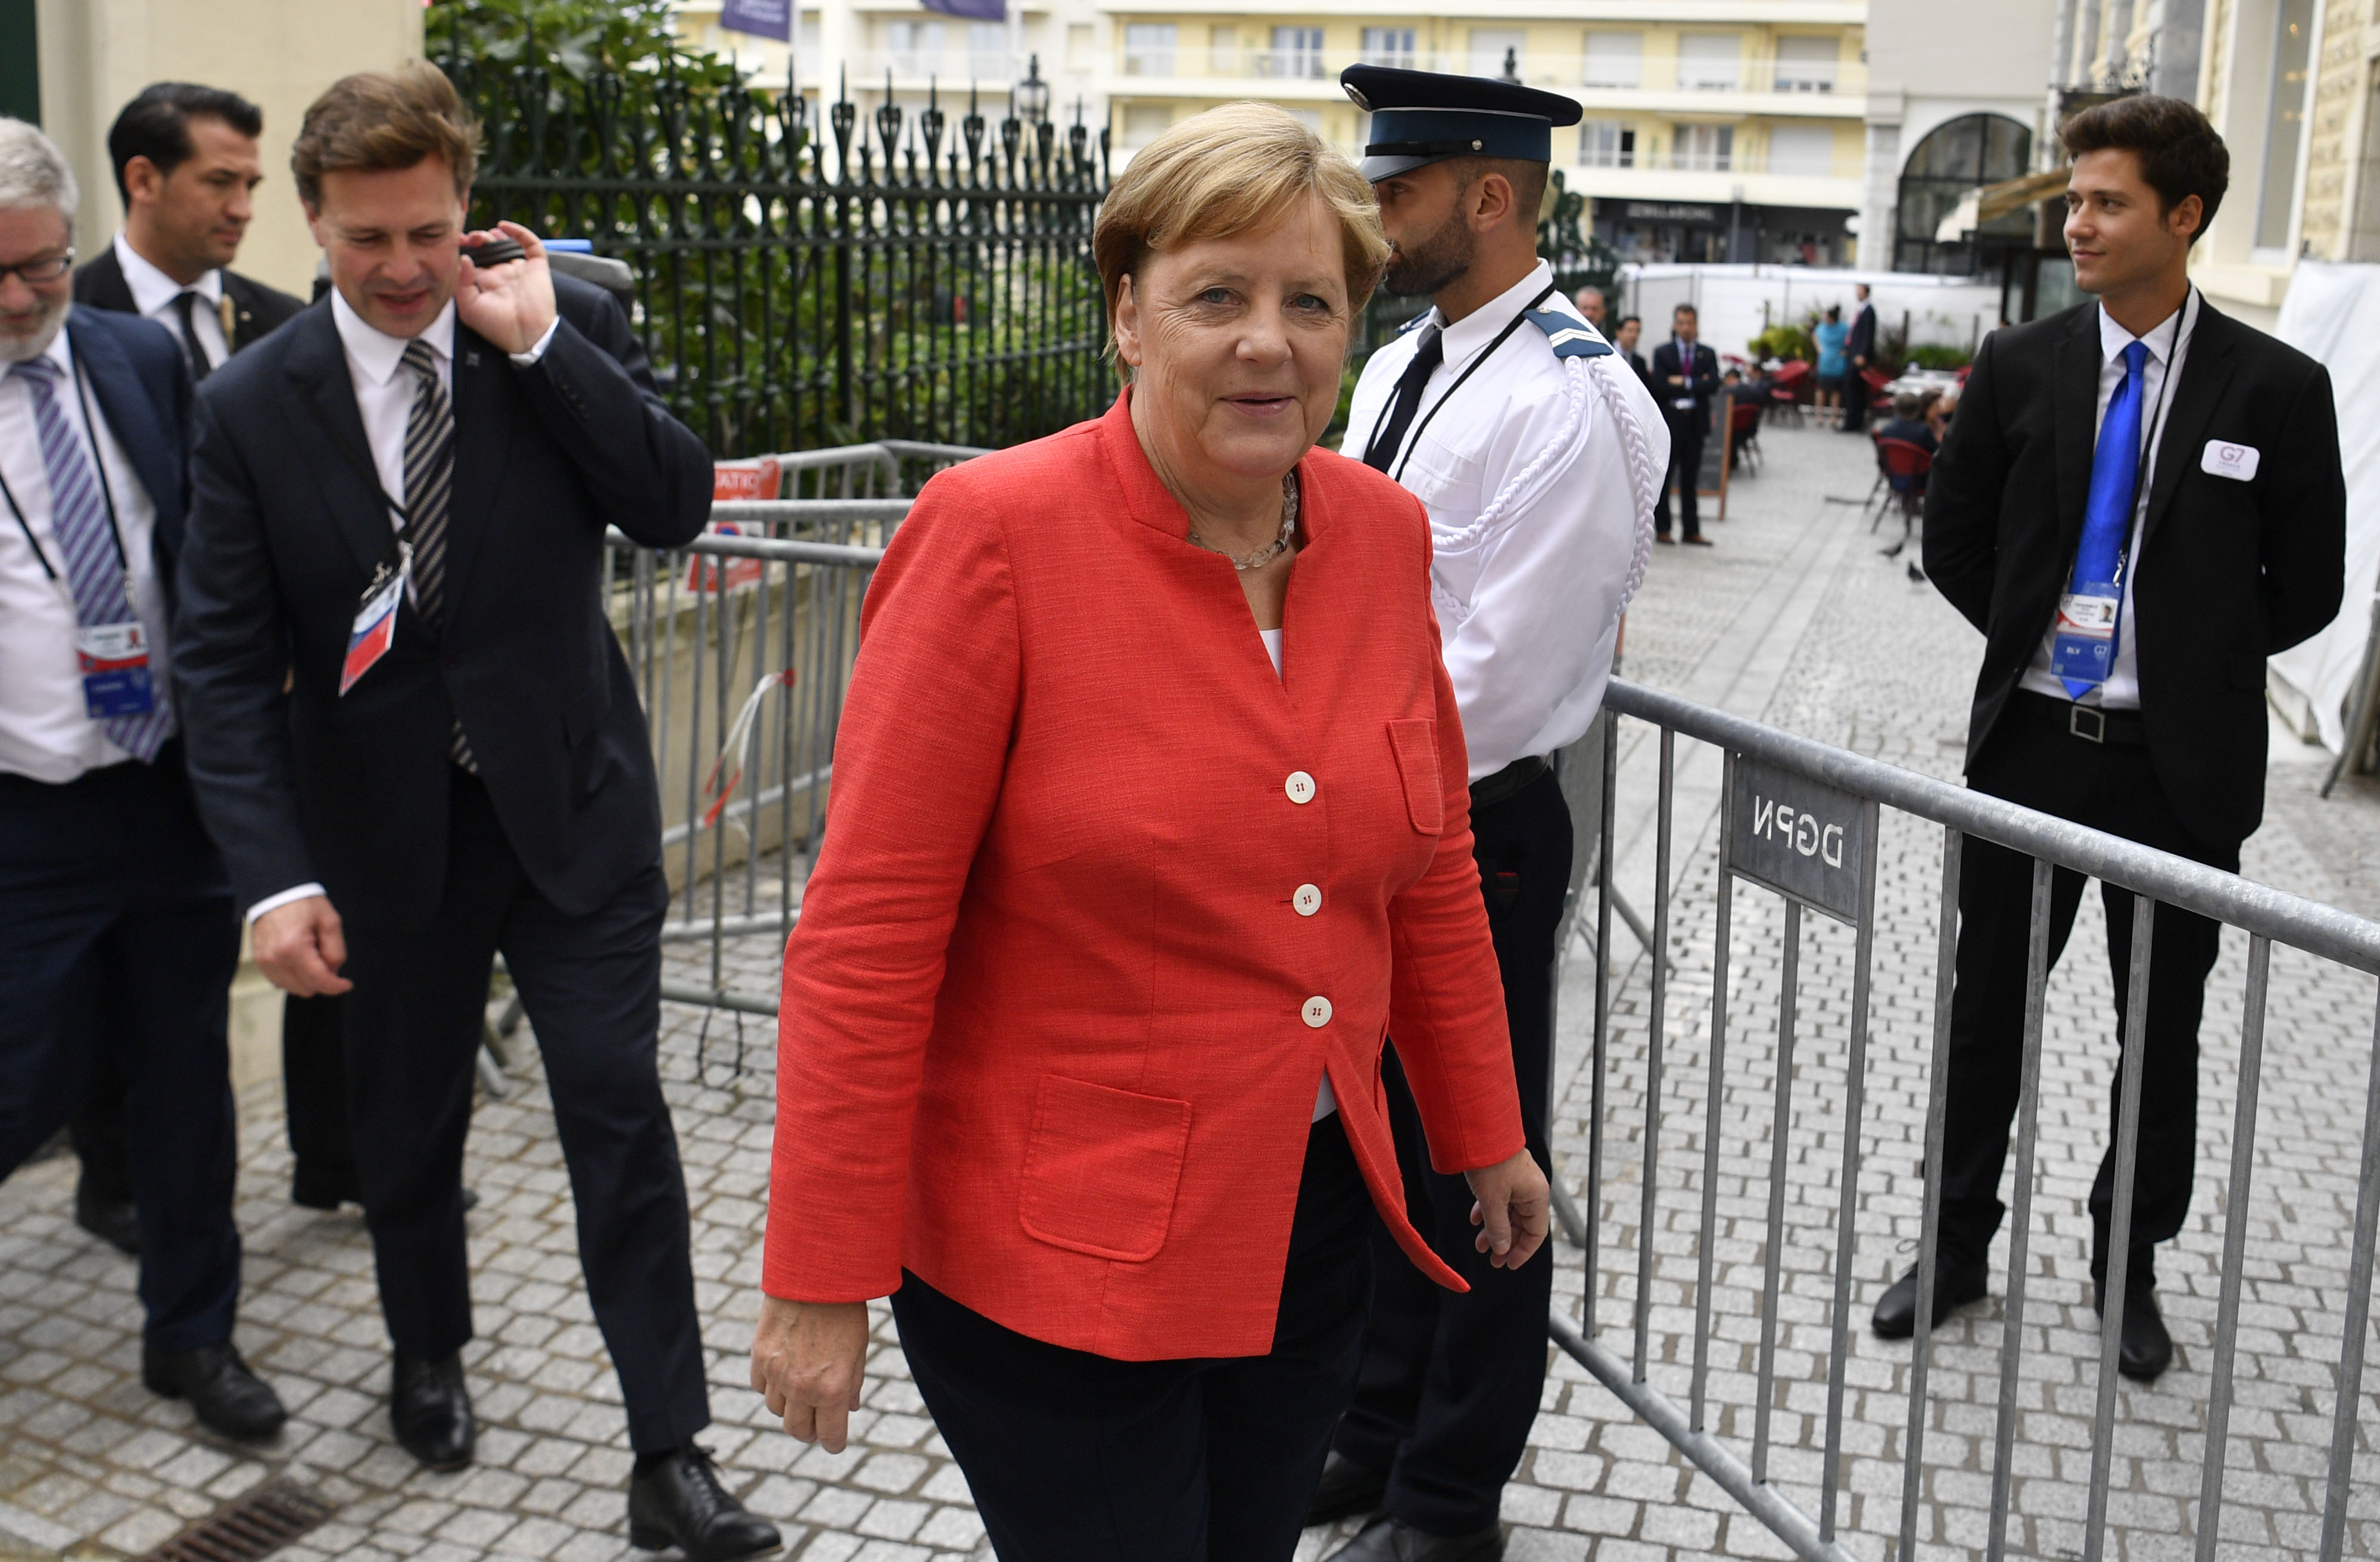 German Chancellor Angela Merkel said her priority was to resolve the conflict between Russia and Ukraine.